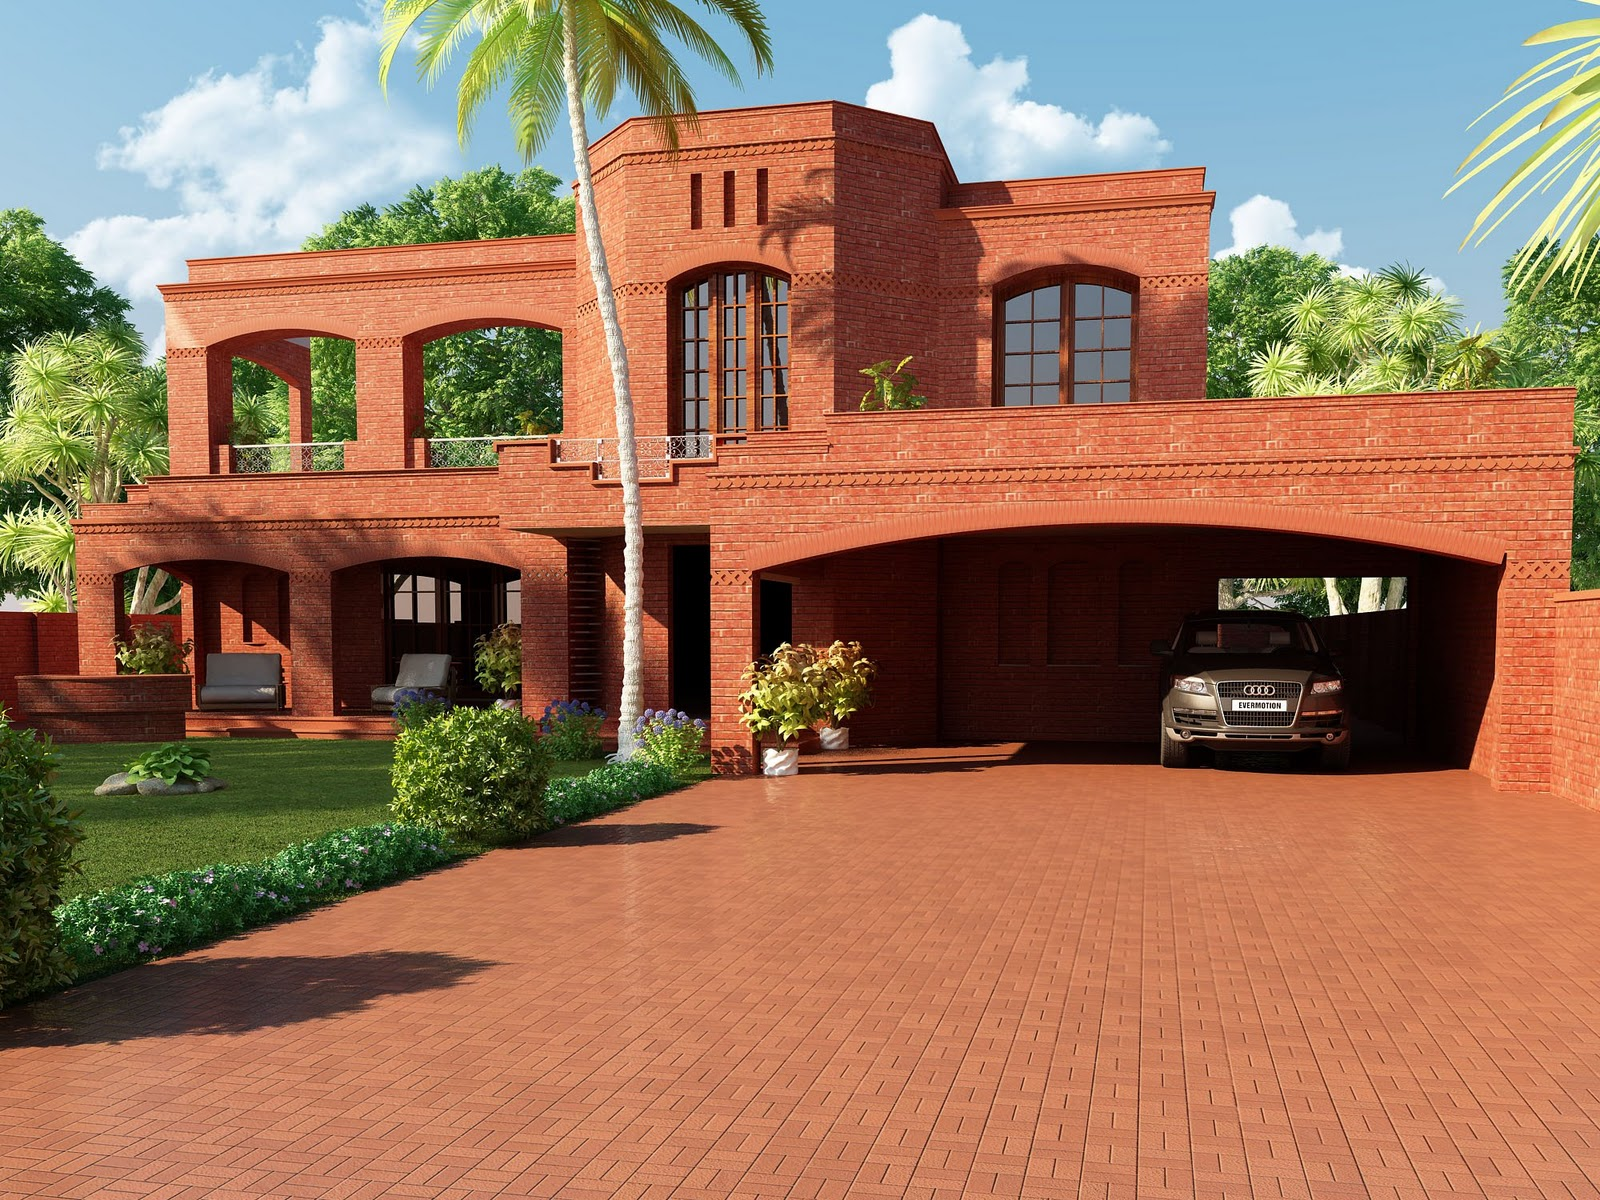 Kerala Building Construction Typical Home 3d Red Themed